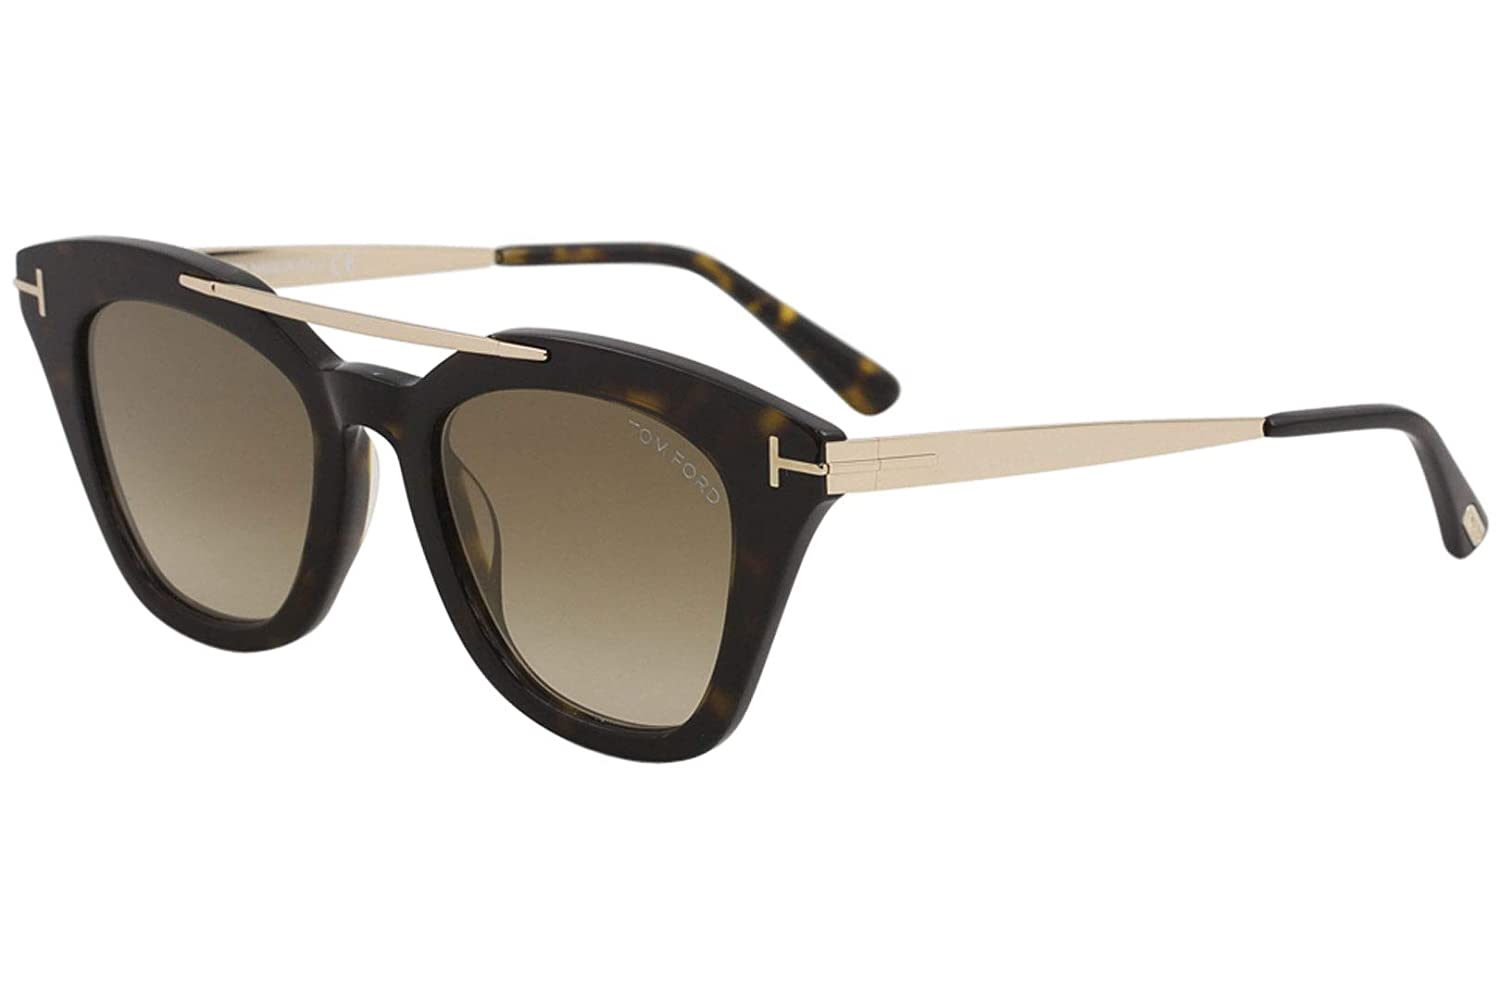 2daadcc42c94a Sunglasses Tom Ford FT 0575 Anna- 02 52G dark havana   brown mirror at  Amazon Men s Clothing store